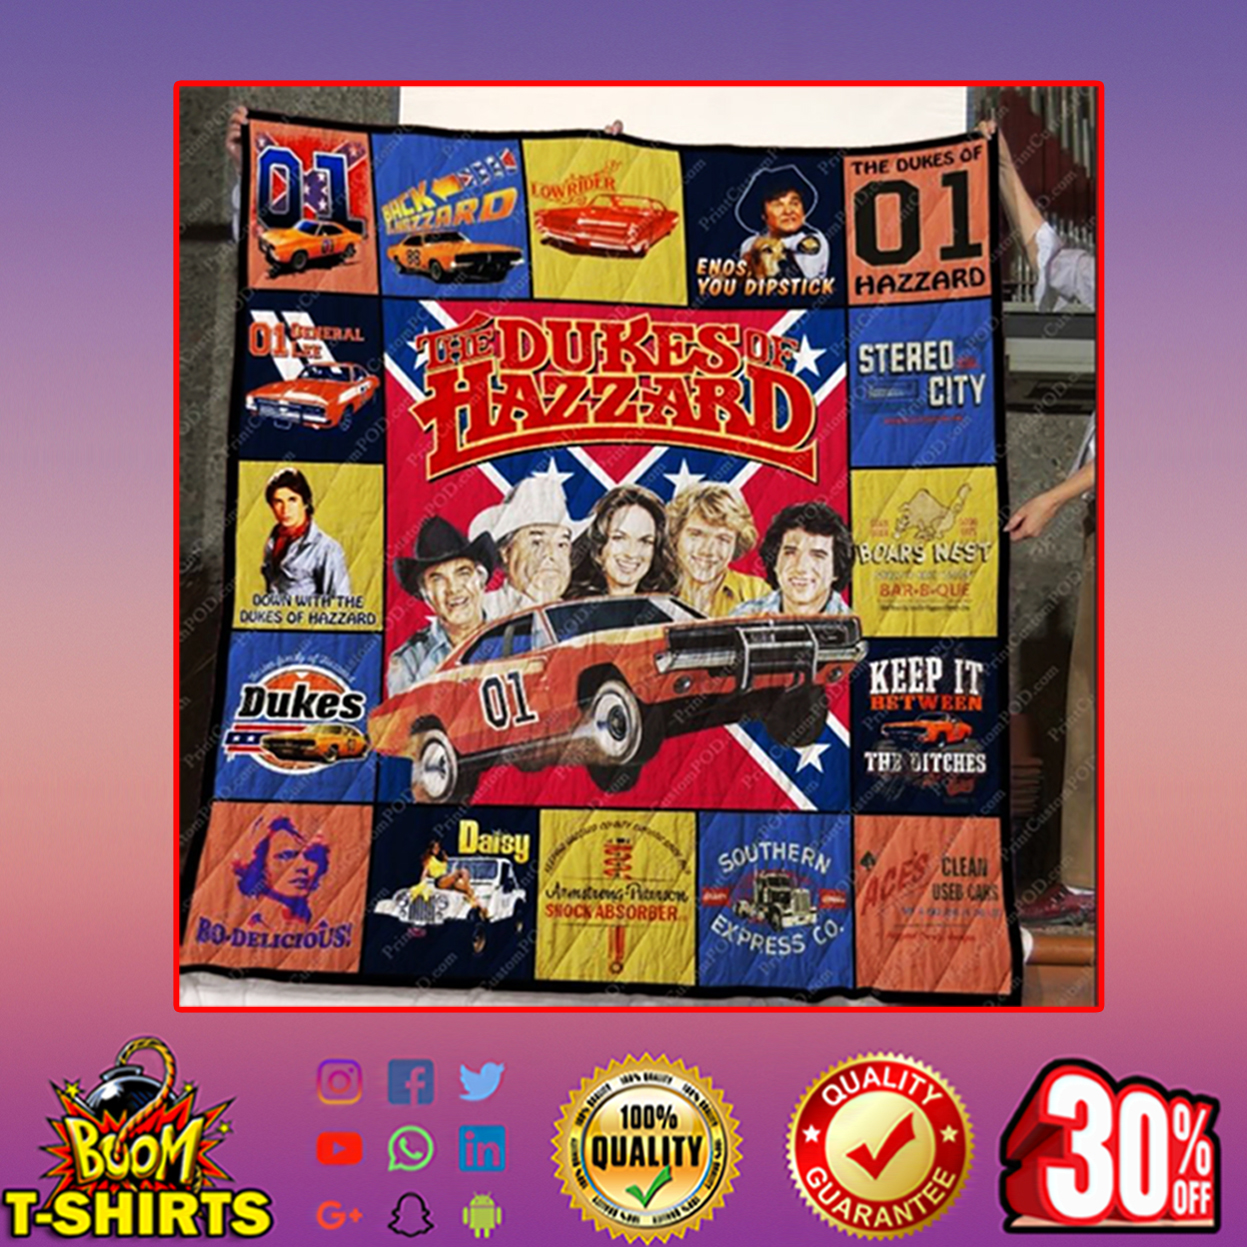 The dukes of hazzard quilt blanket - queen (70x80 inches)